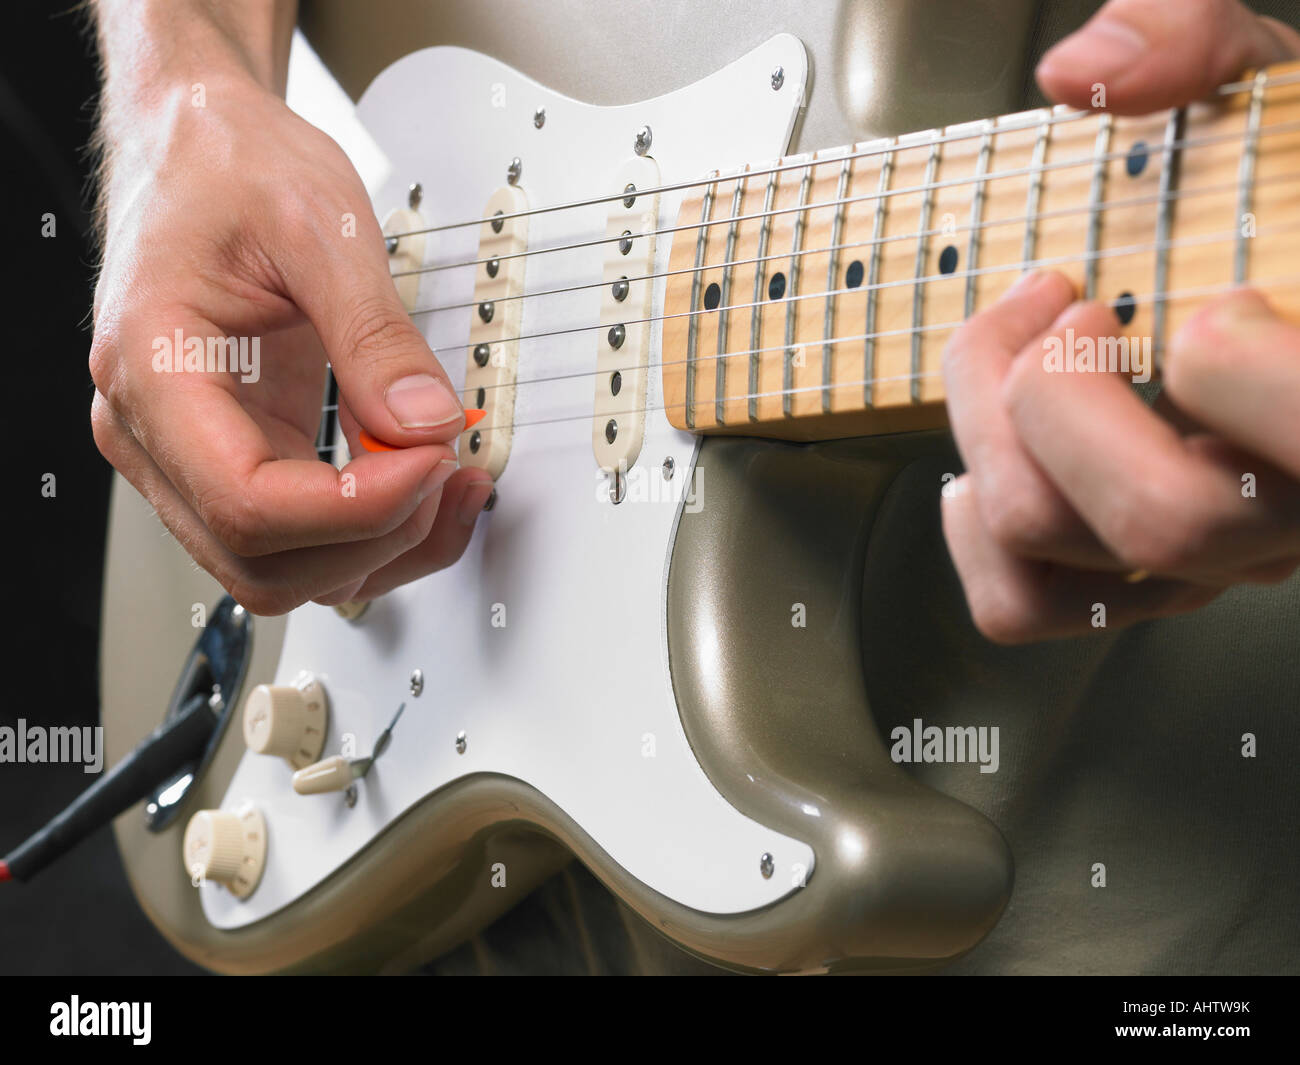 One Electric Guitar Player Close Up On Hands Stock Photo 14547006